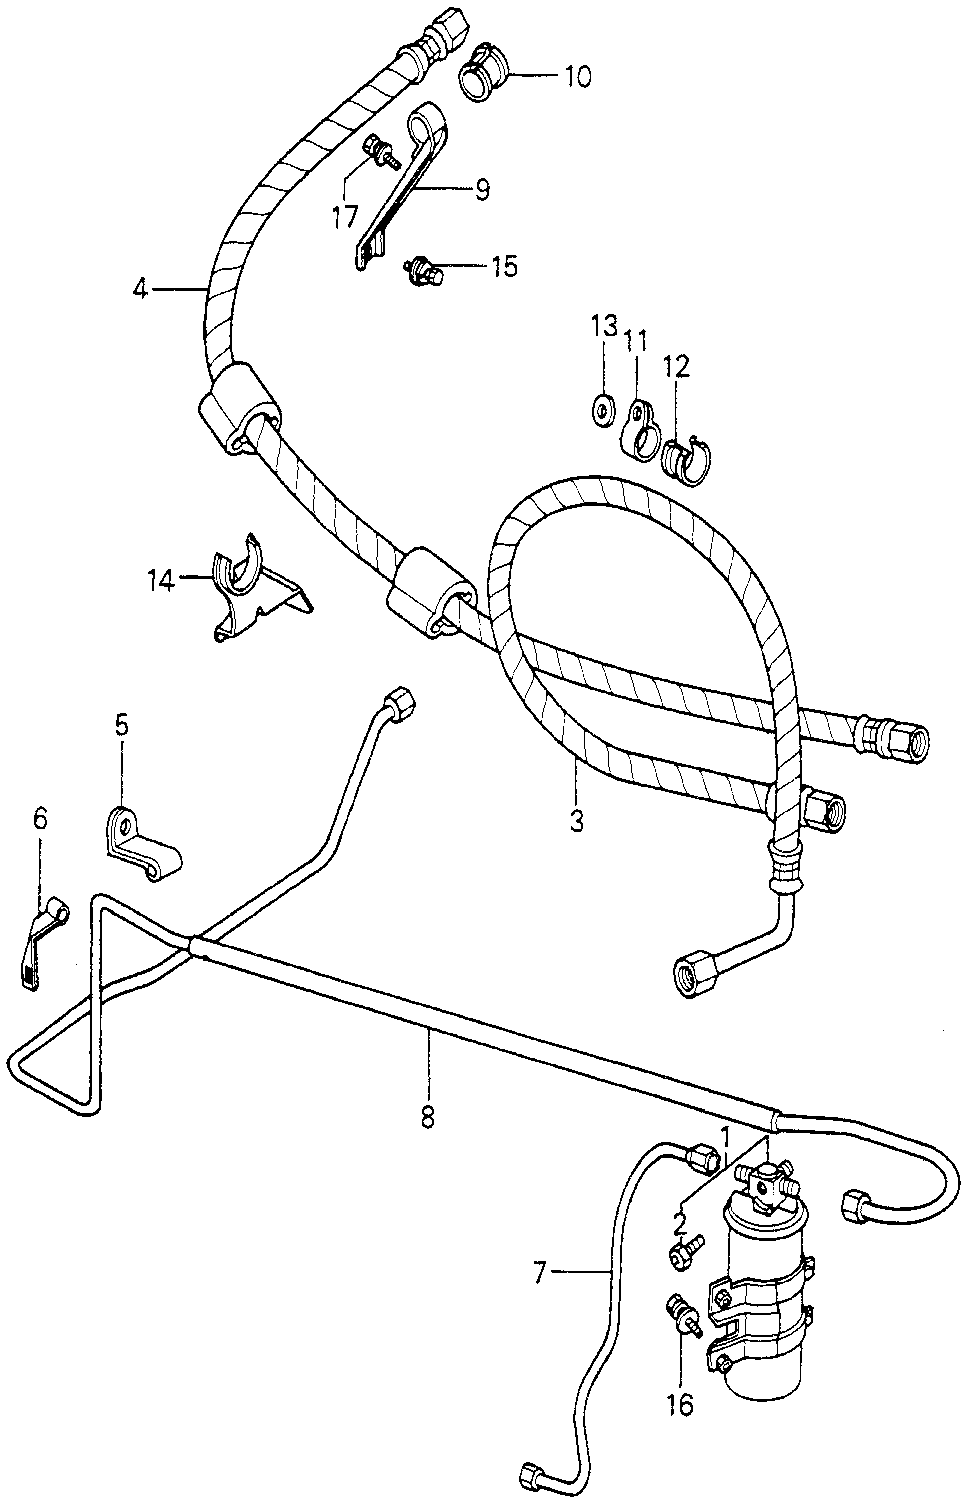 38665-671-671 - PIPE, RECEIVER